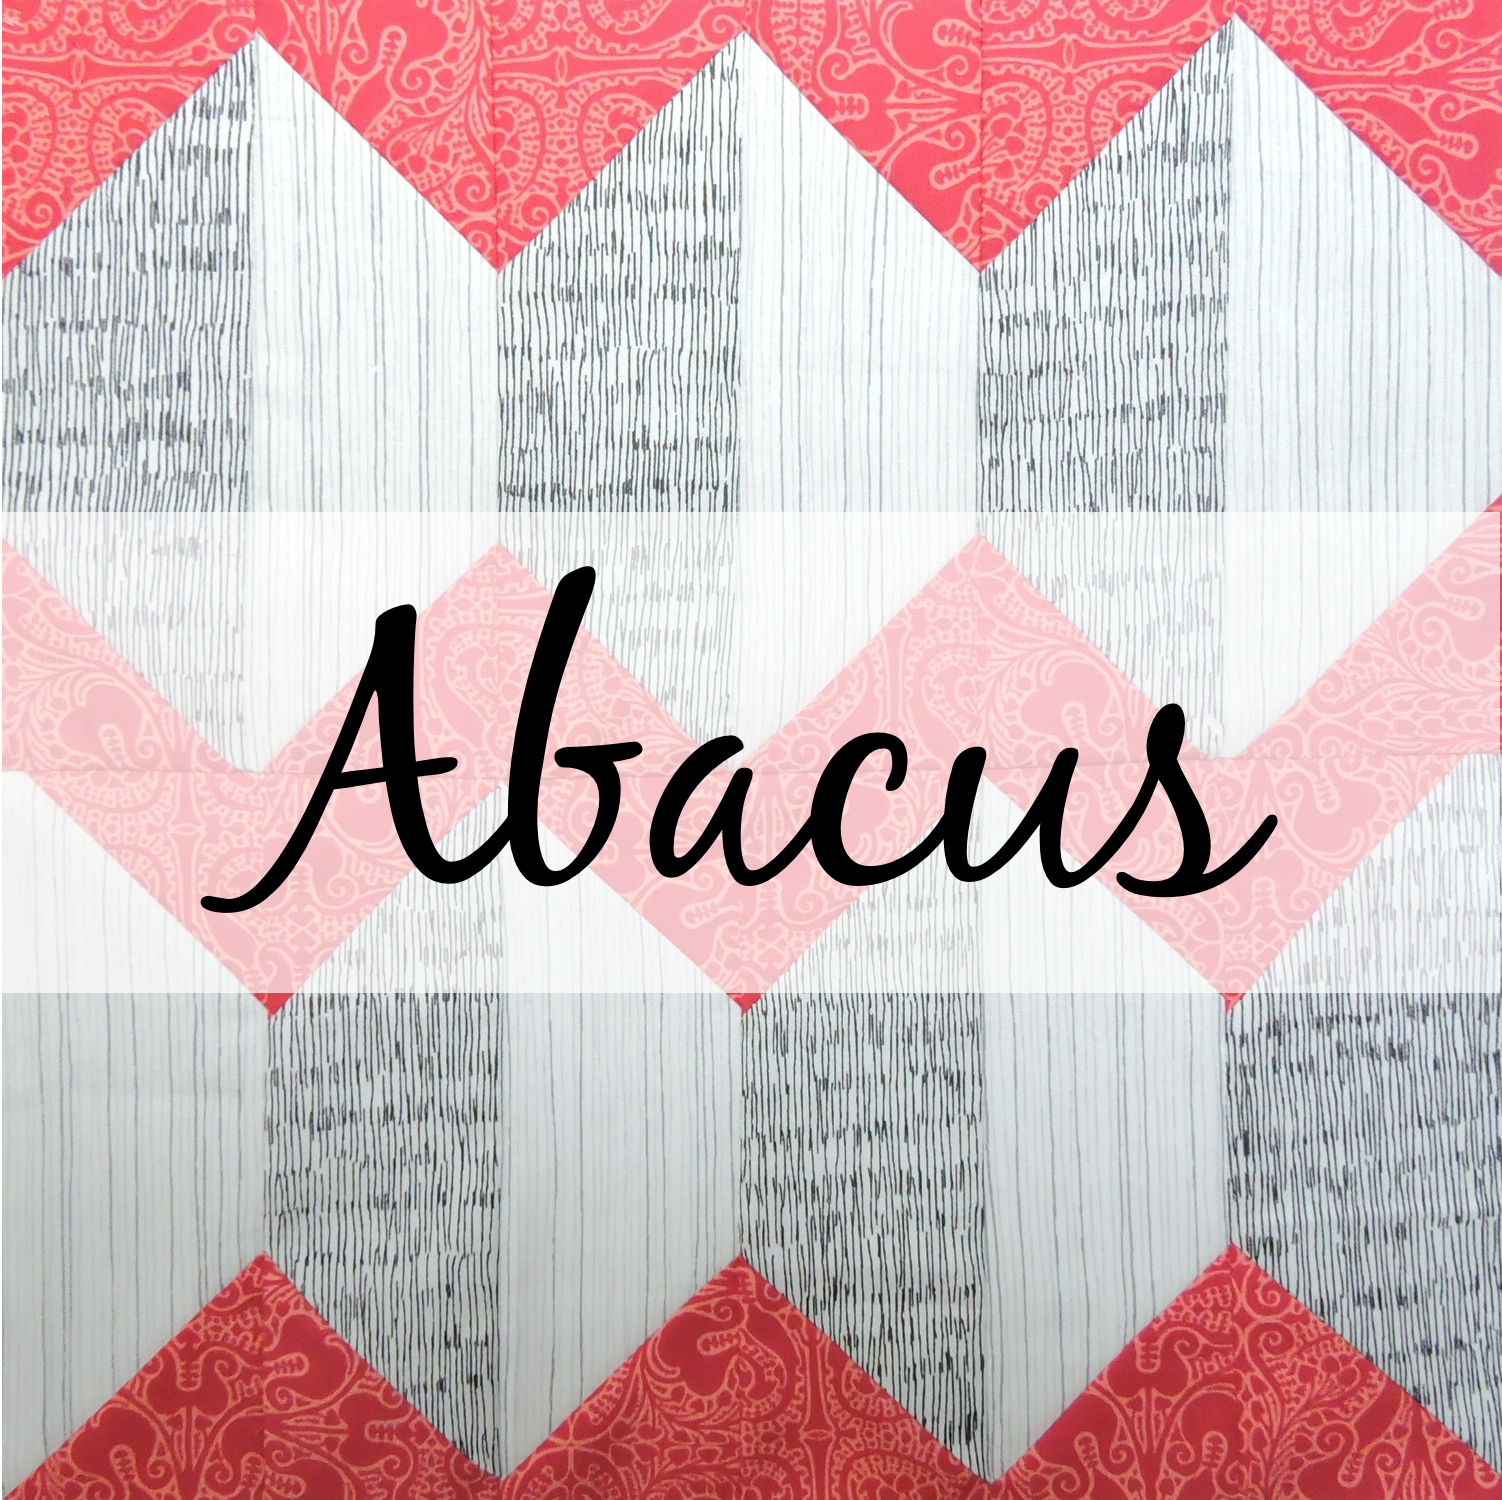 The Bee Hive: Abacus